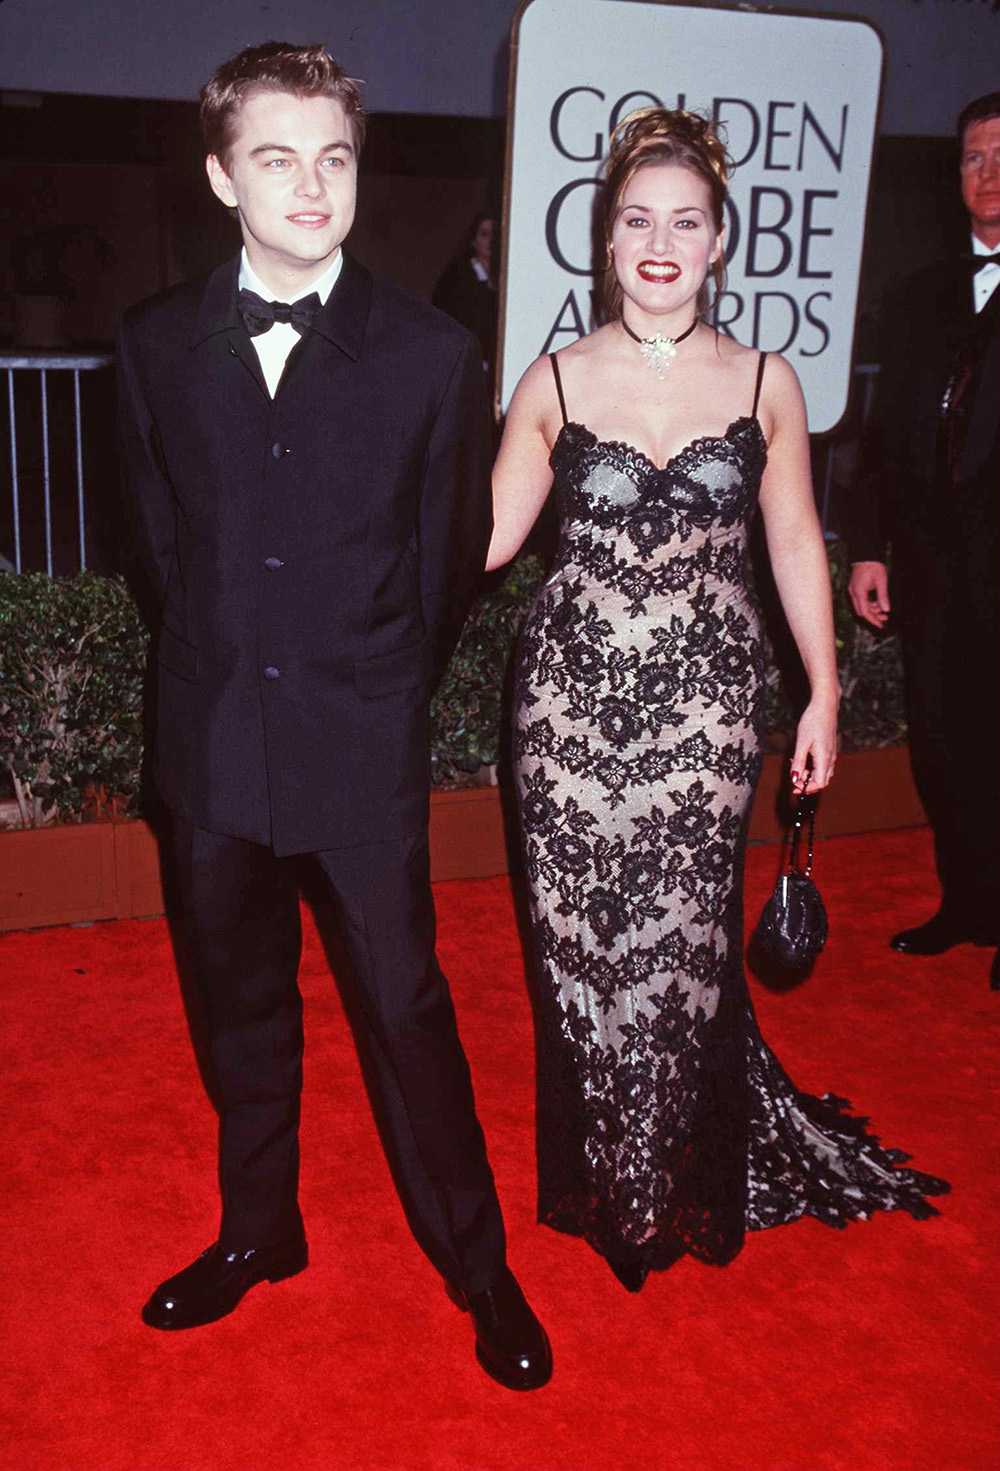 Kate and Leo at the 1998 Golden Globes